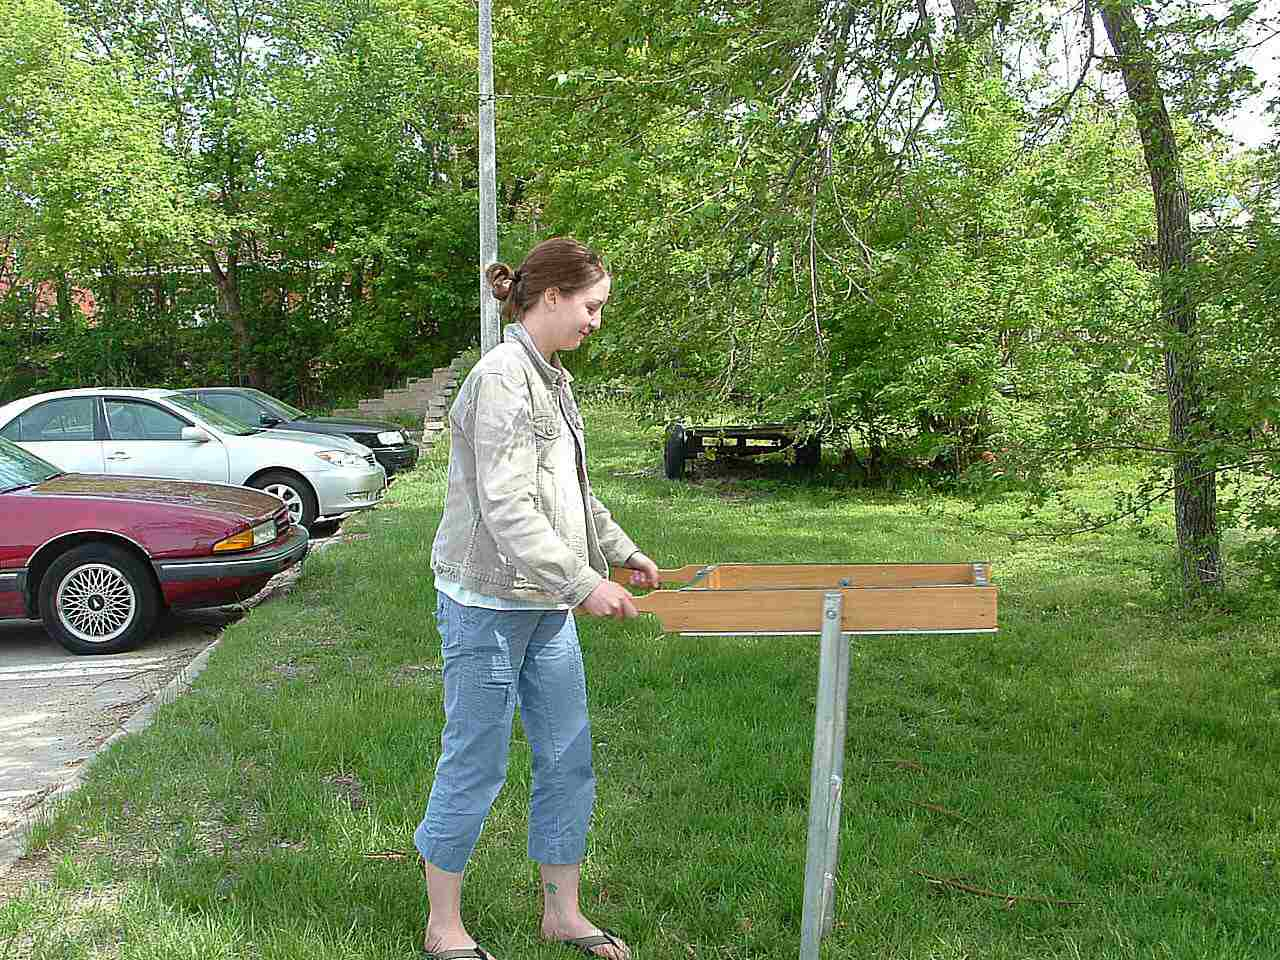 An archaeologist demonstrates the shaker screen (pay no attention to the inappropriate footwear).